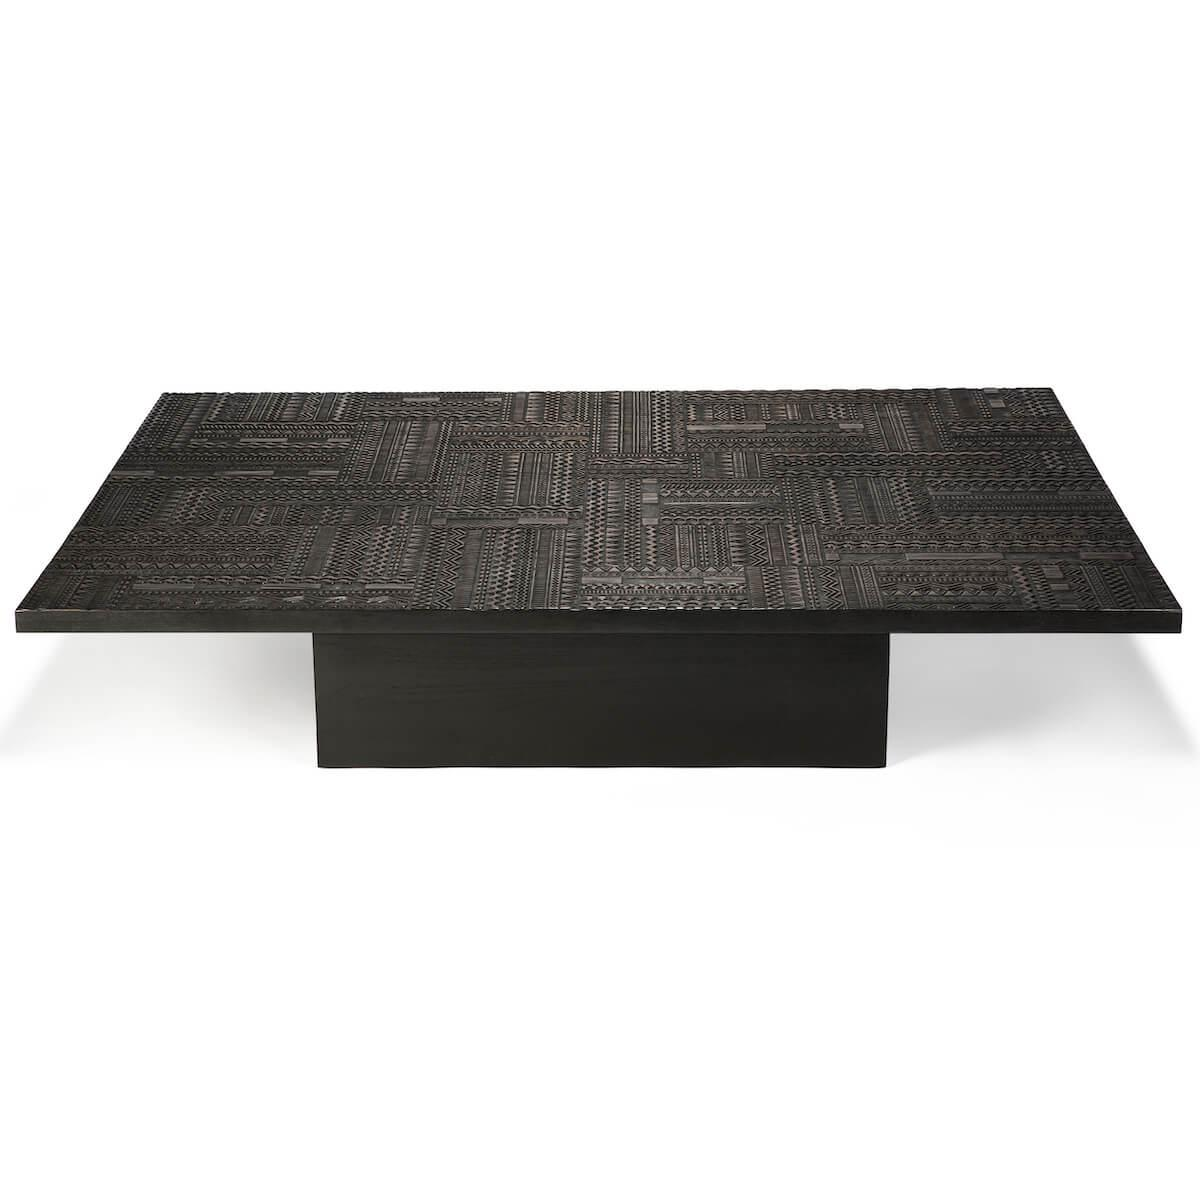 Table basse 120x170cm TABWA BLOK Ethnicraft teck noir